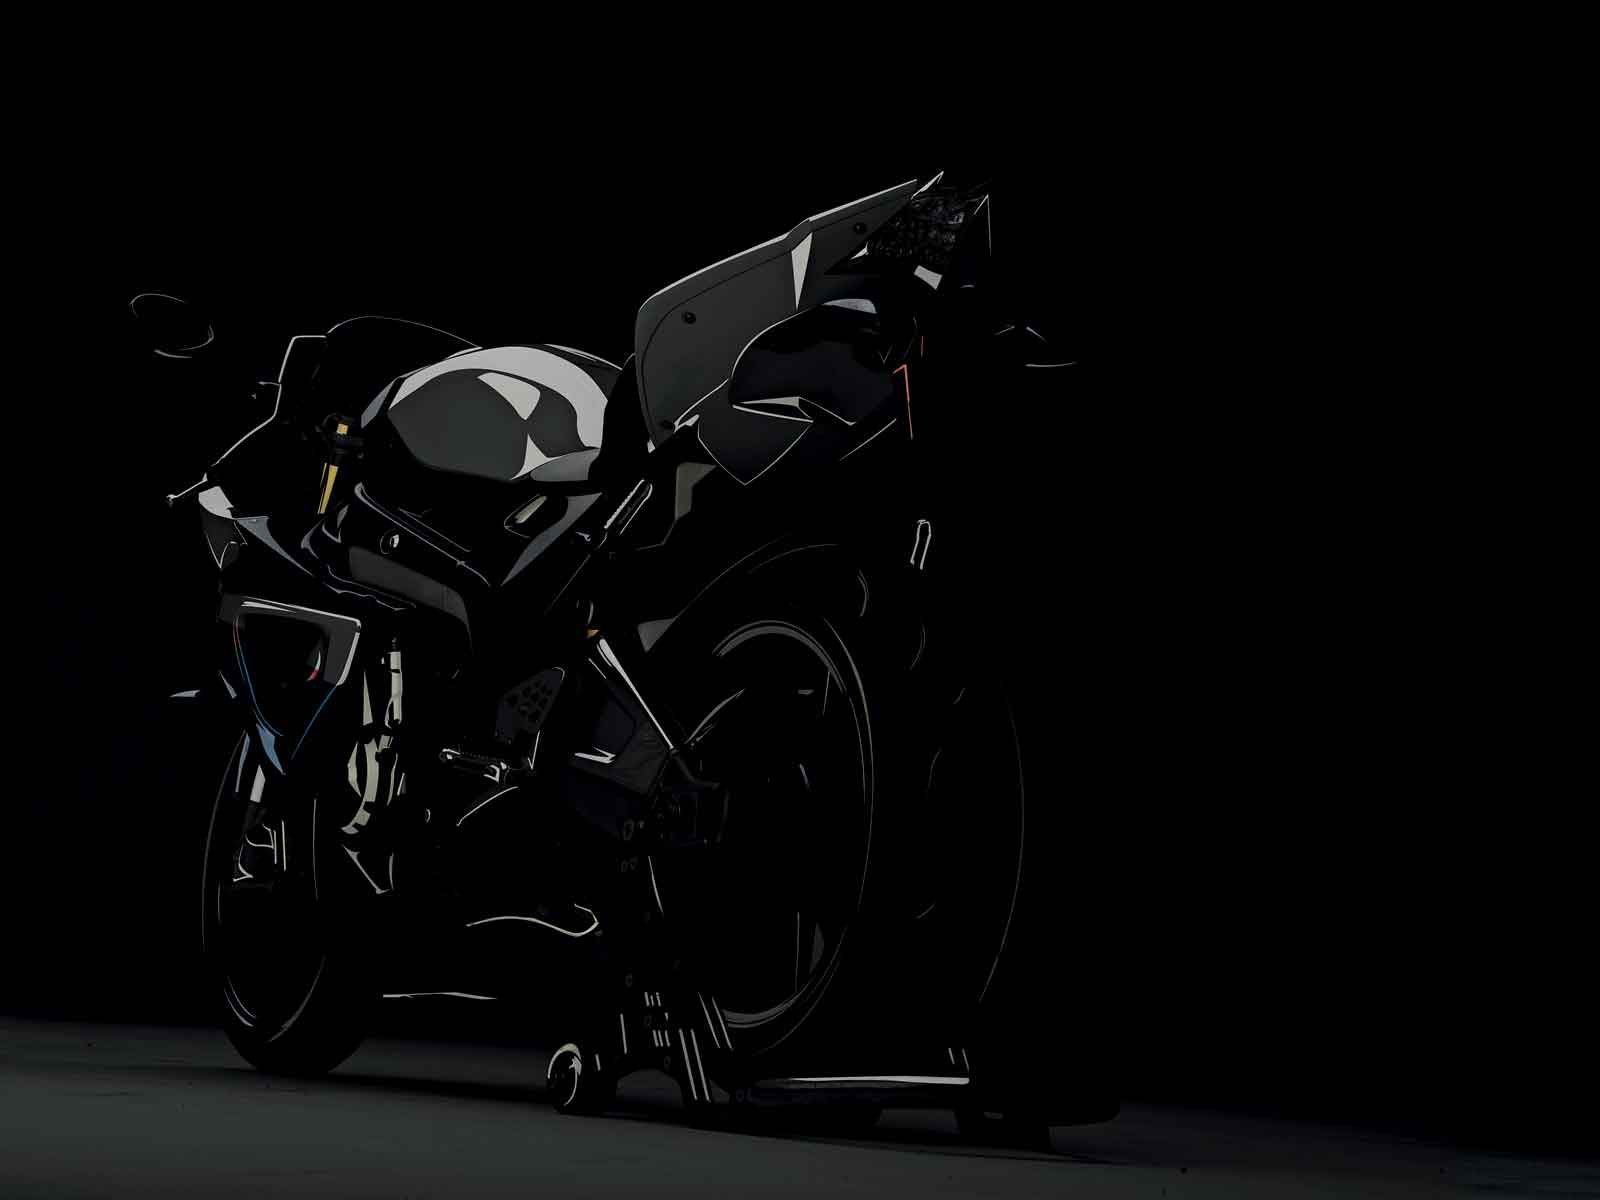 Bmw S1000rr Darkness Prevails With Images Bmw S1000rr